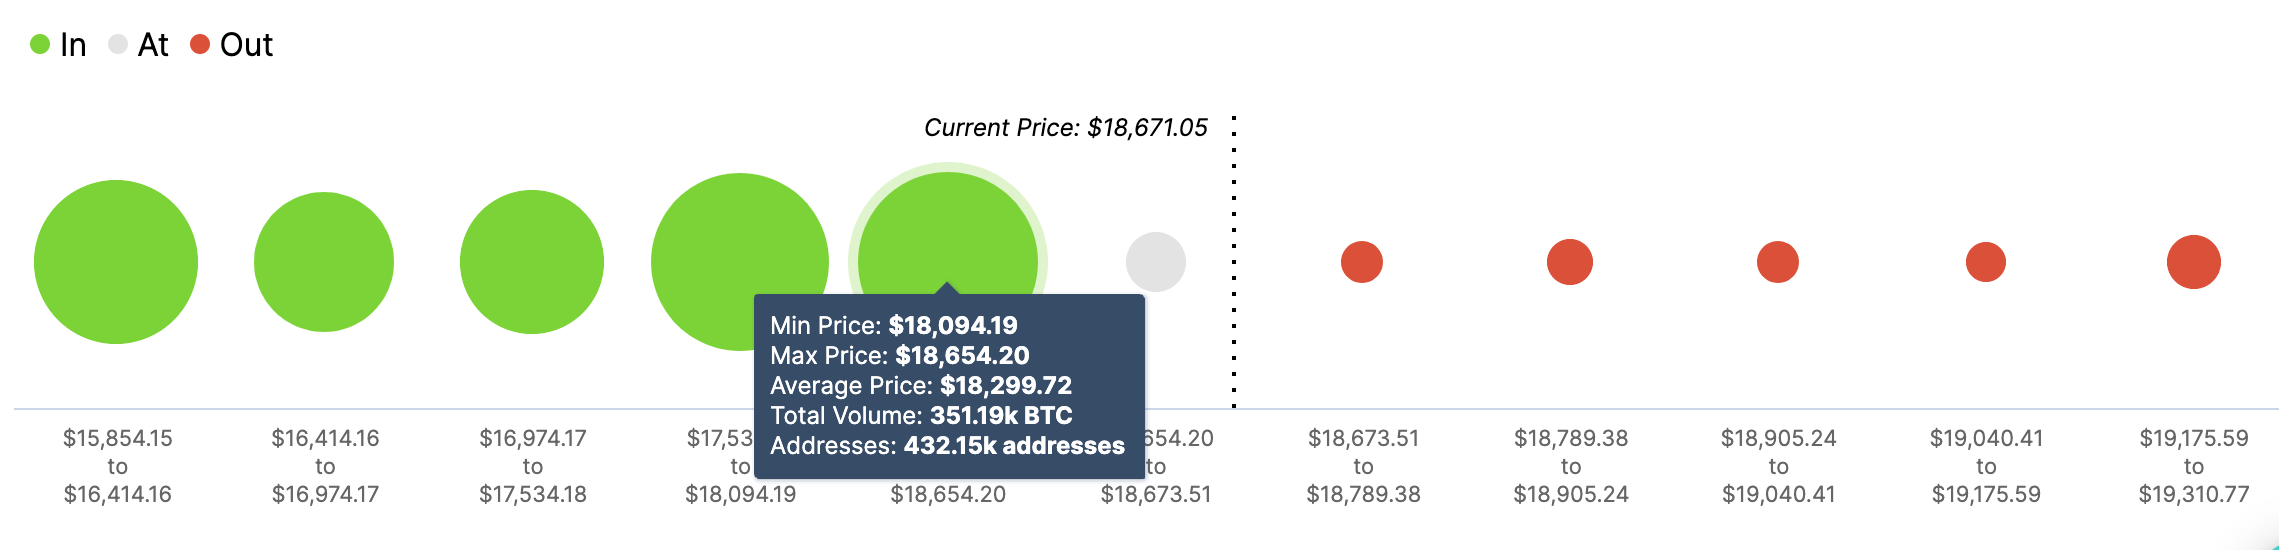 Bitcoin In/Out of the Money Around Price